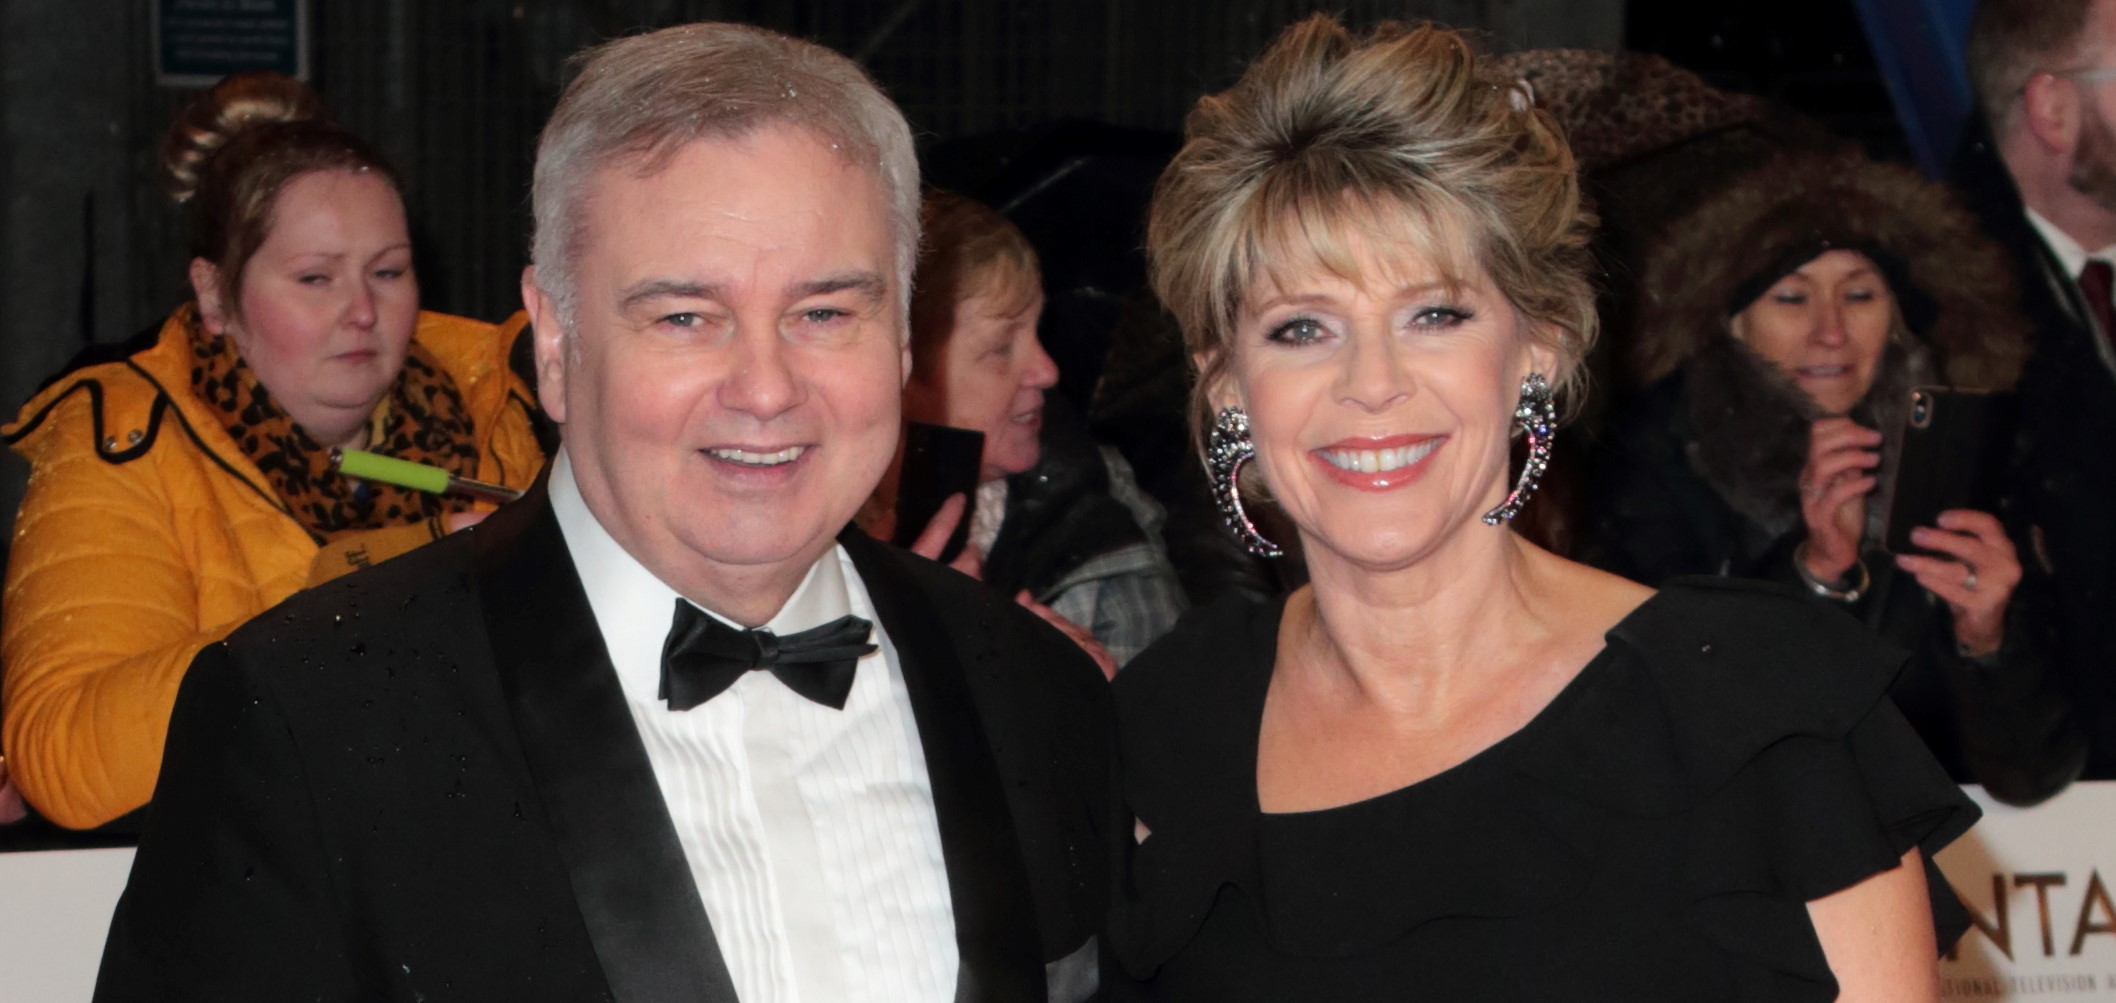 Eamonn Holmes pays tribute to 'incredible' wife Ruth Langsford after 'difficult year'